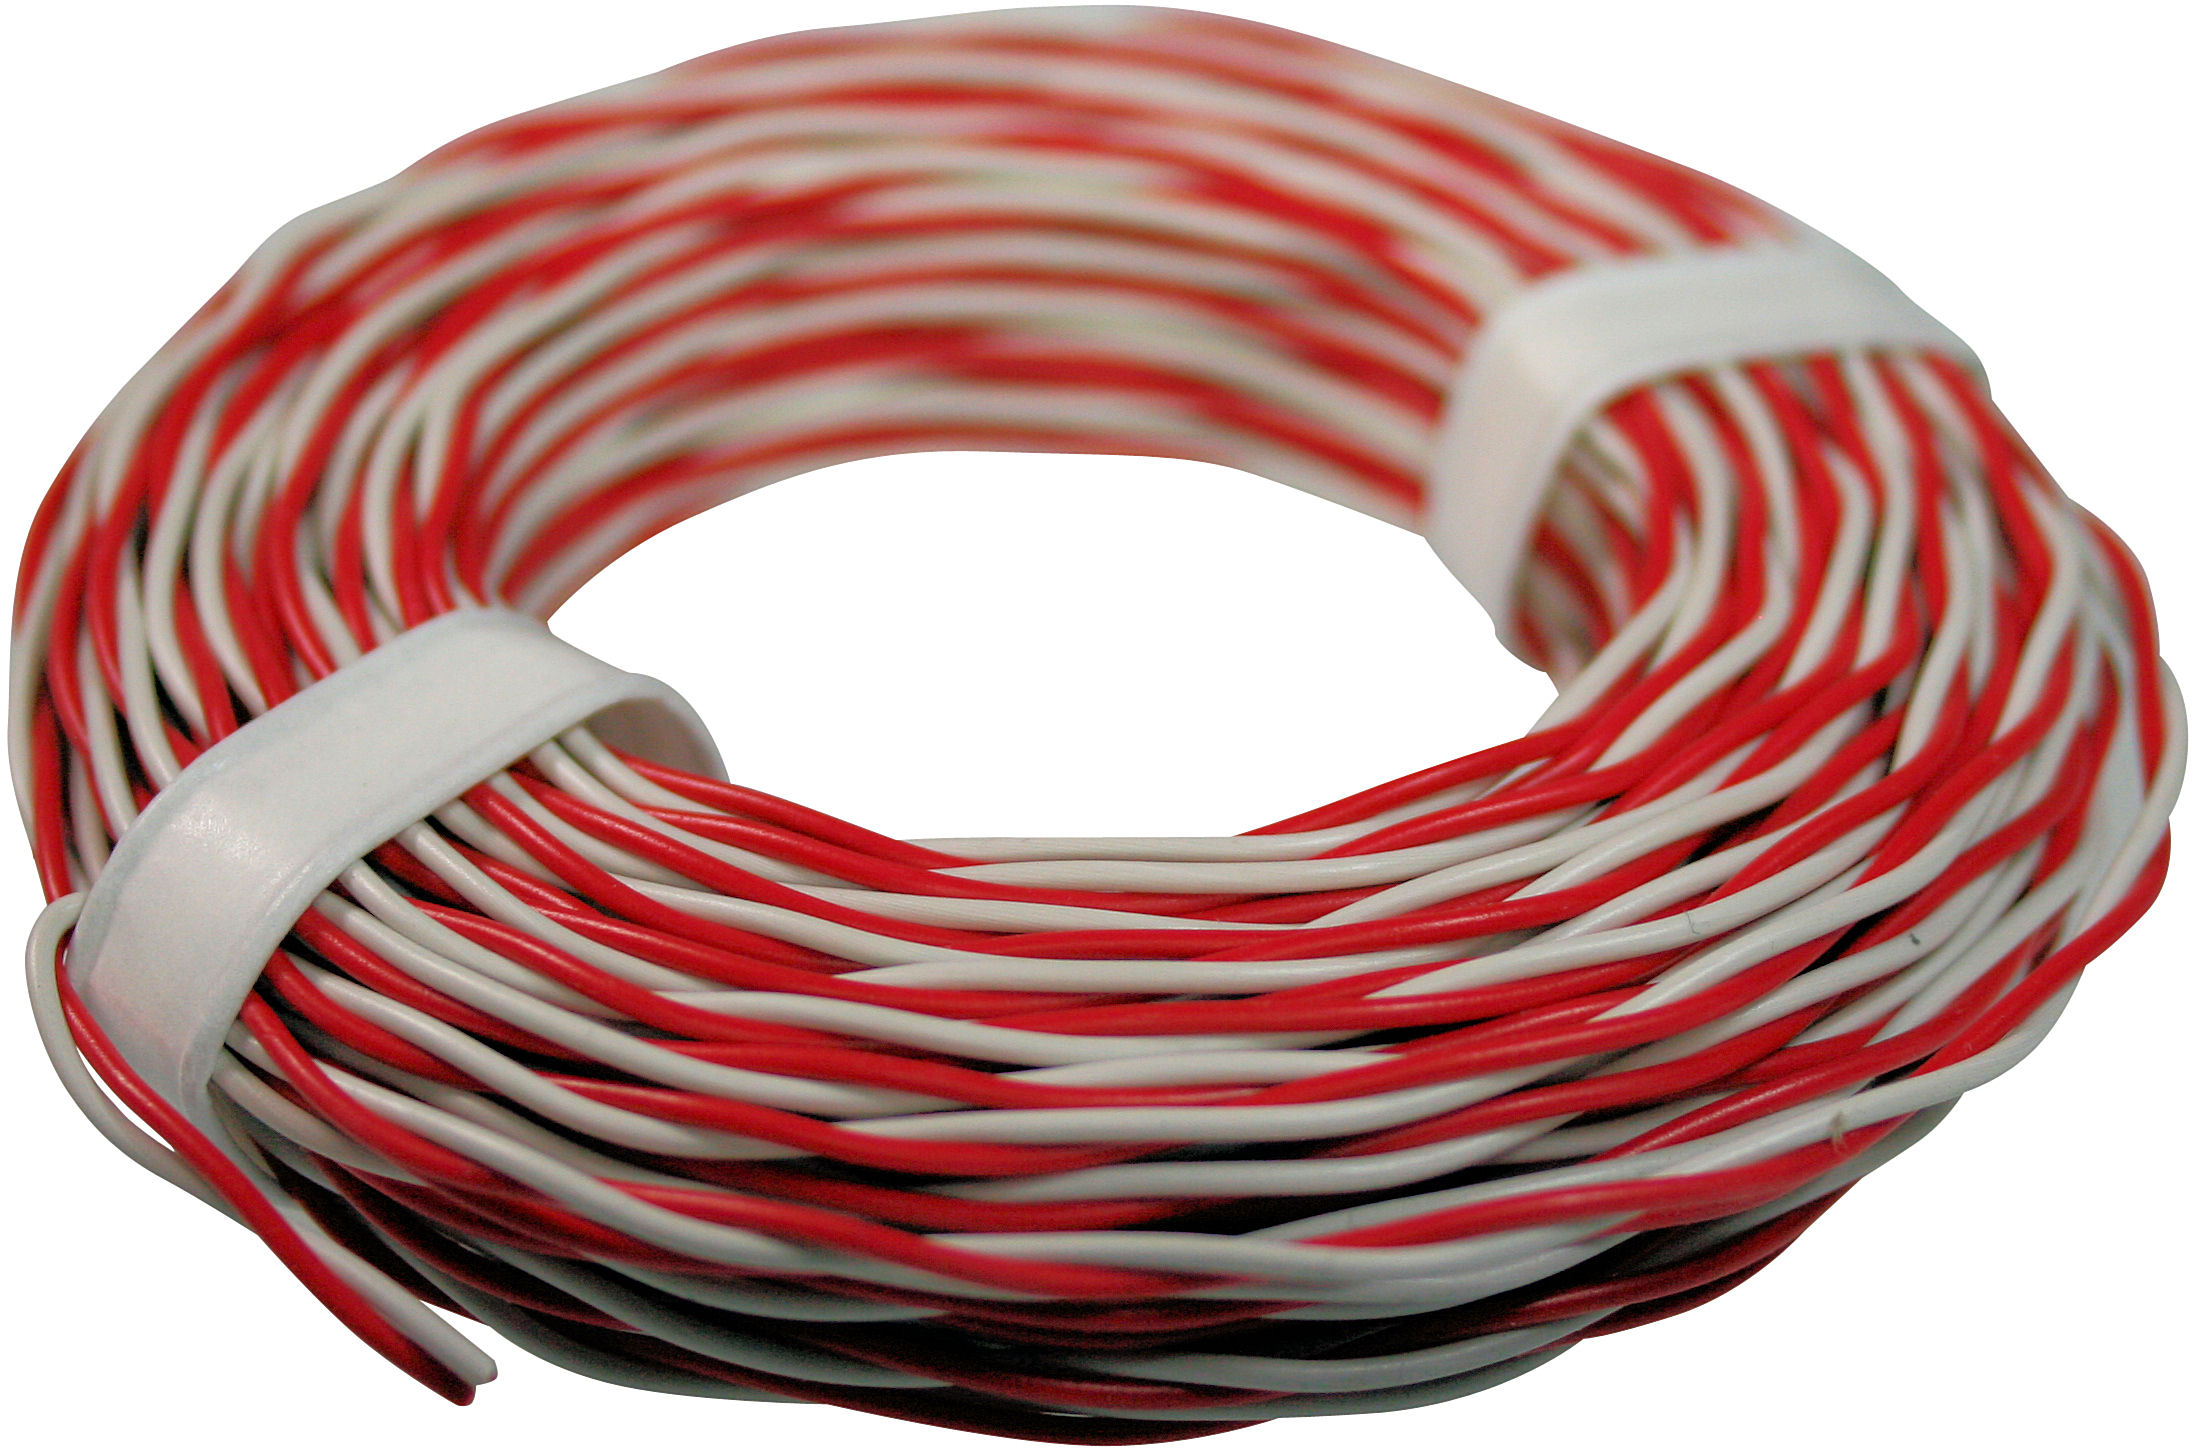 Twin Wire SC-0,5mm, rd/wh, 10m